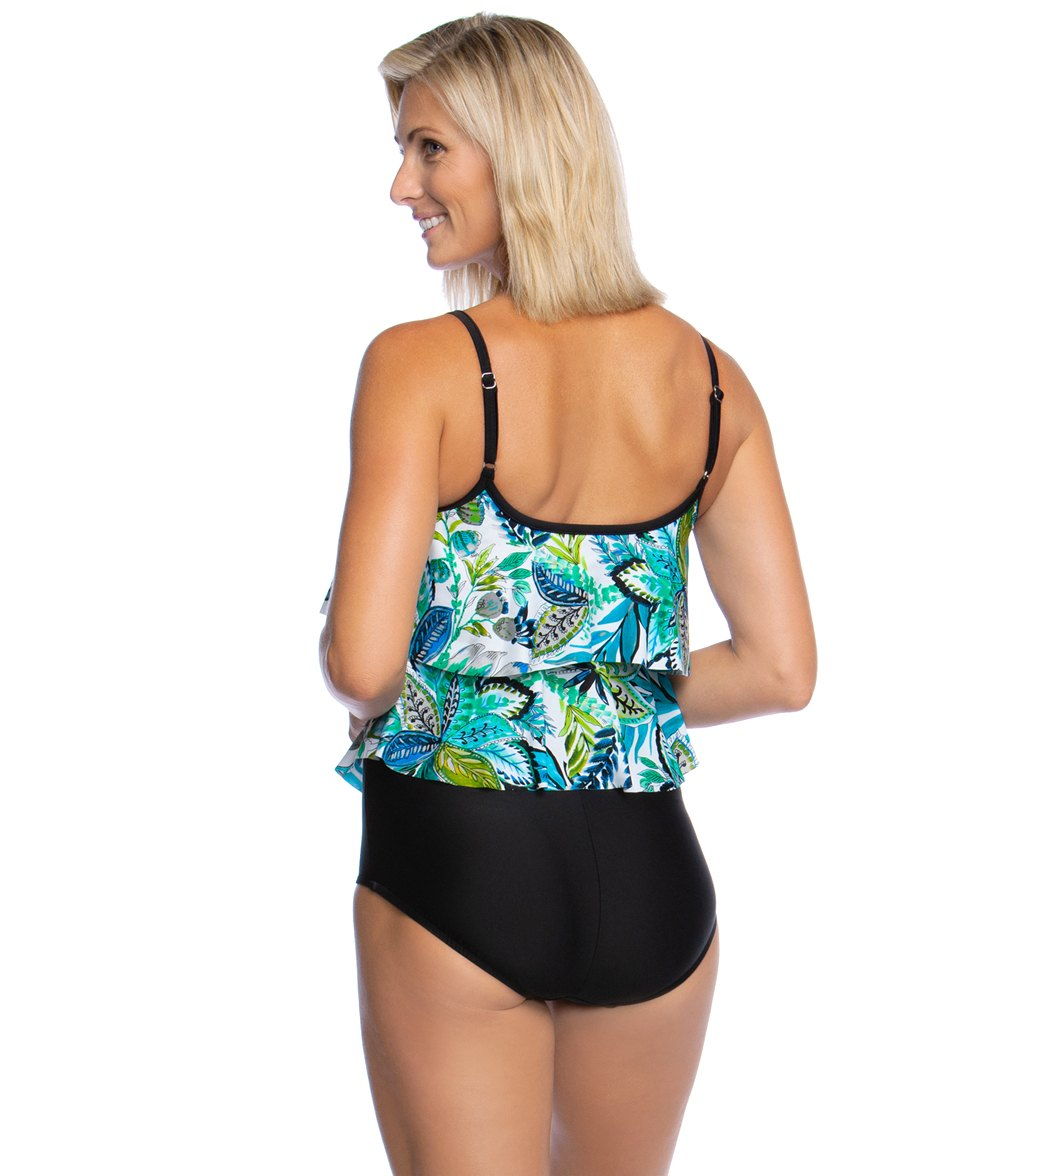 ac74551ed3 Maxine Nola Double Tiered One Piece Swimsuit at SwimOutlet.com ...